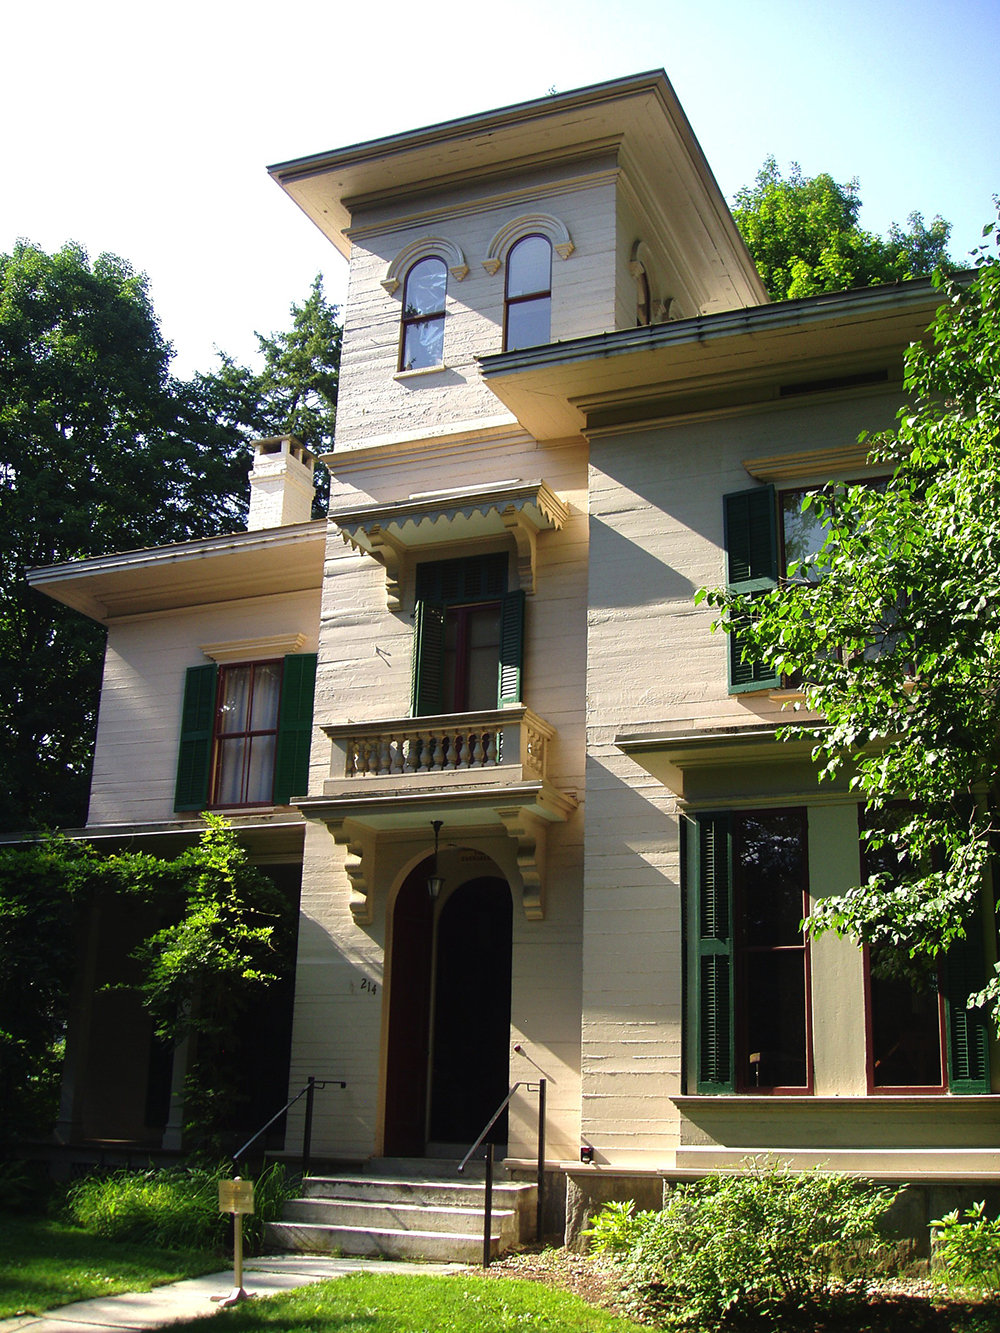 The Evergreens, Austin Dickinson's House, 2006. Photograph by Daderot. Wikimedia Commons (CC BY-SA 3.0).